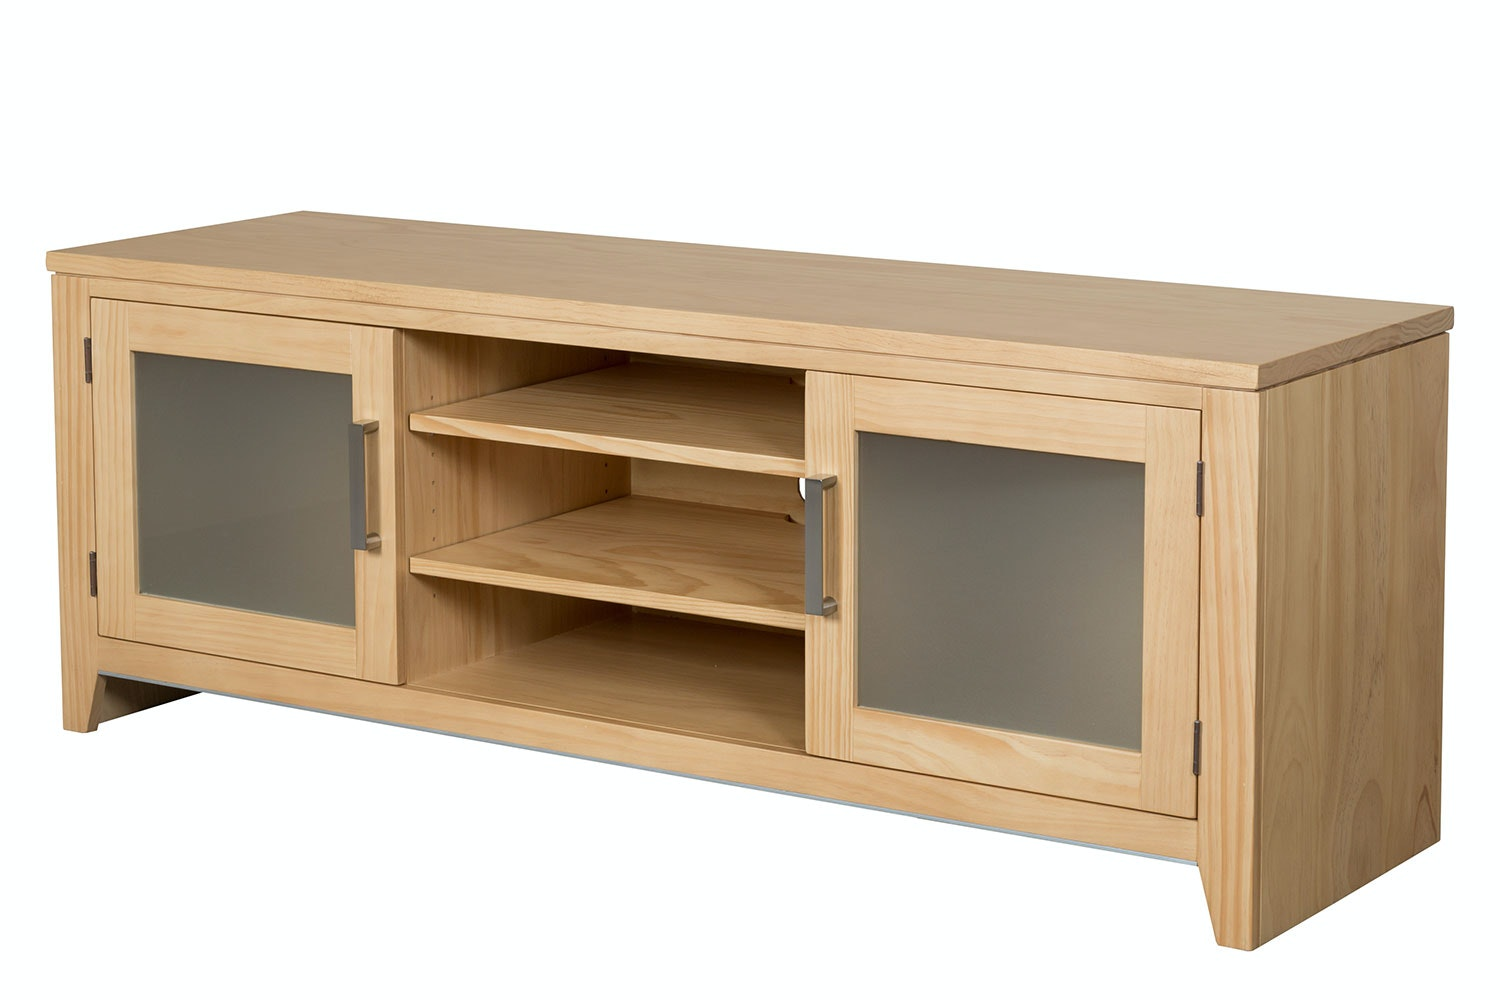 Metro Large Entertainment Unit by Coastwood Furniture